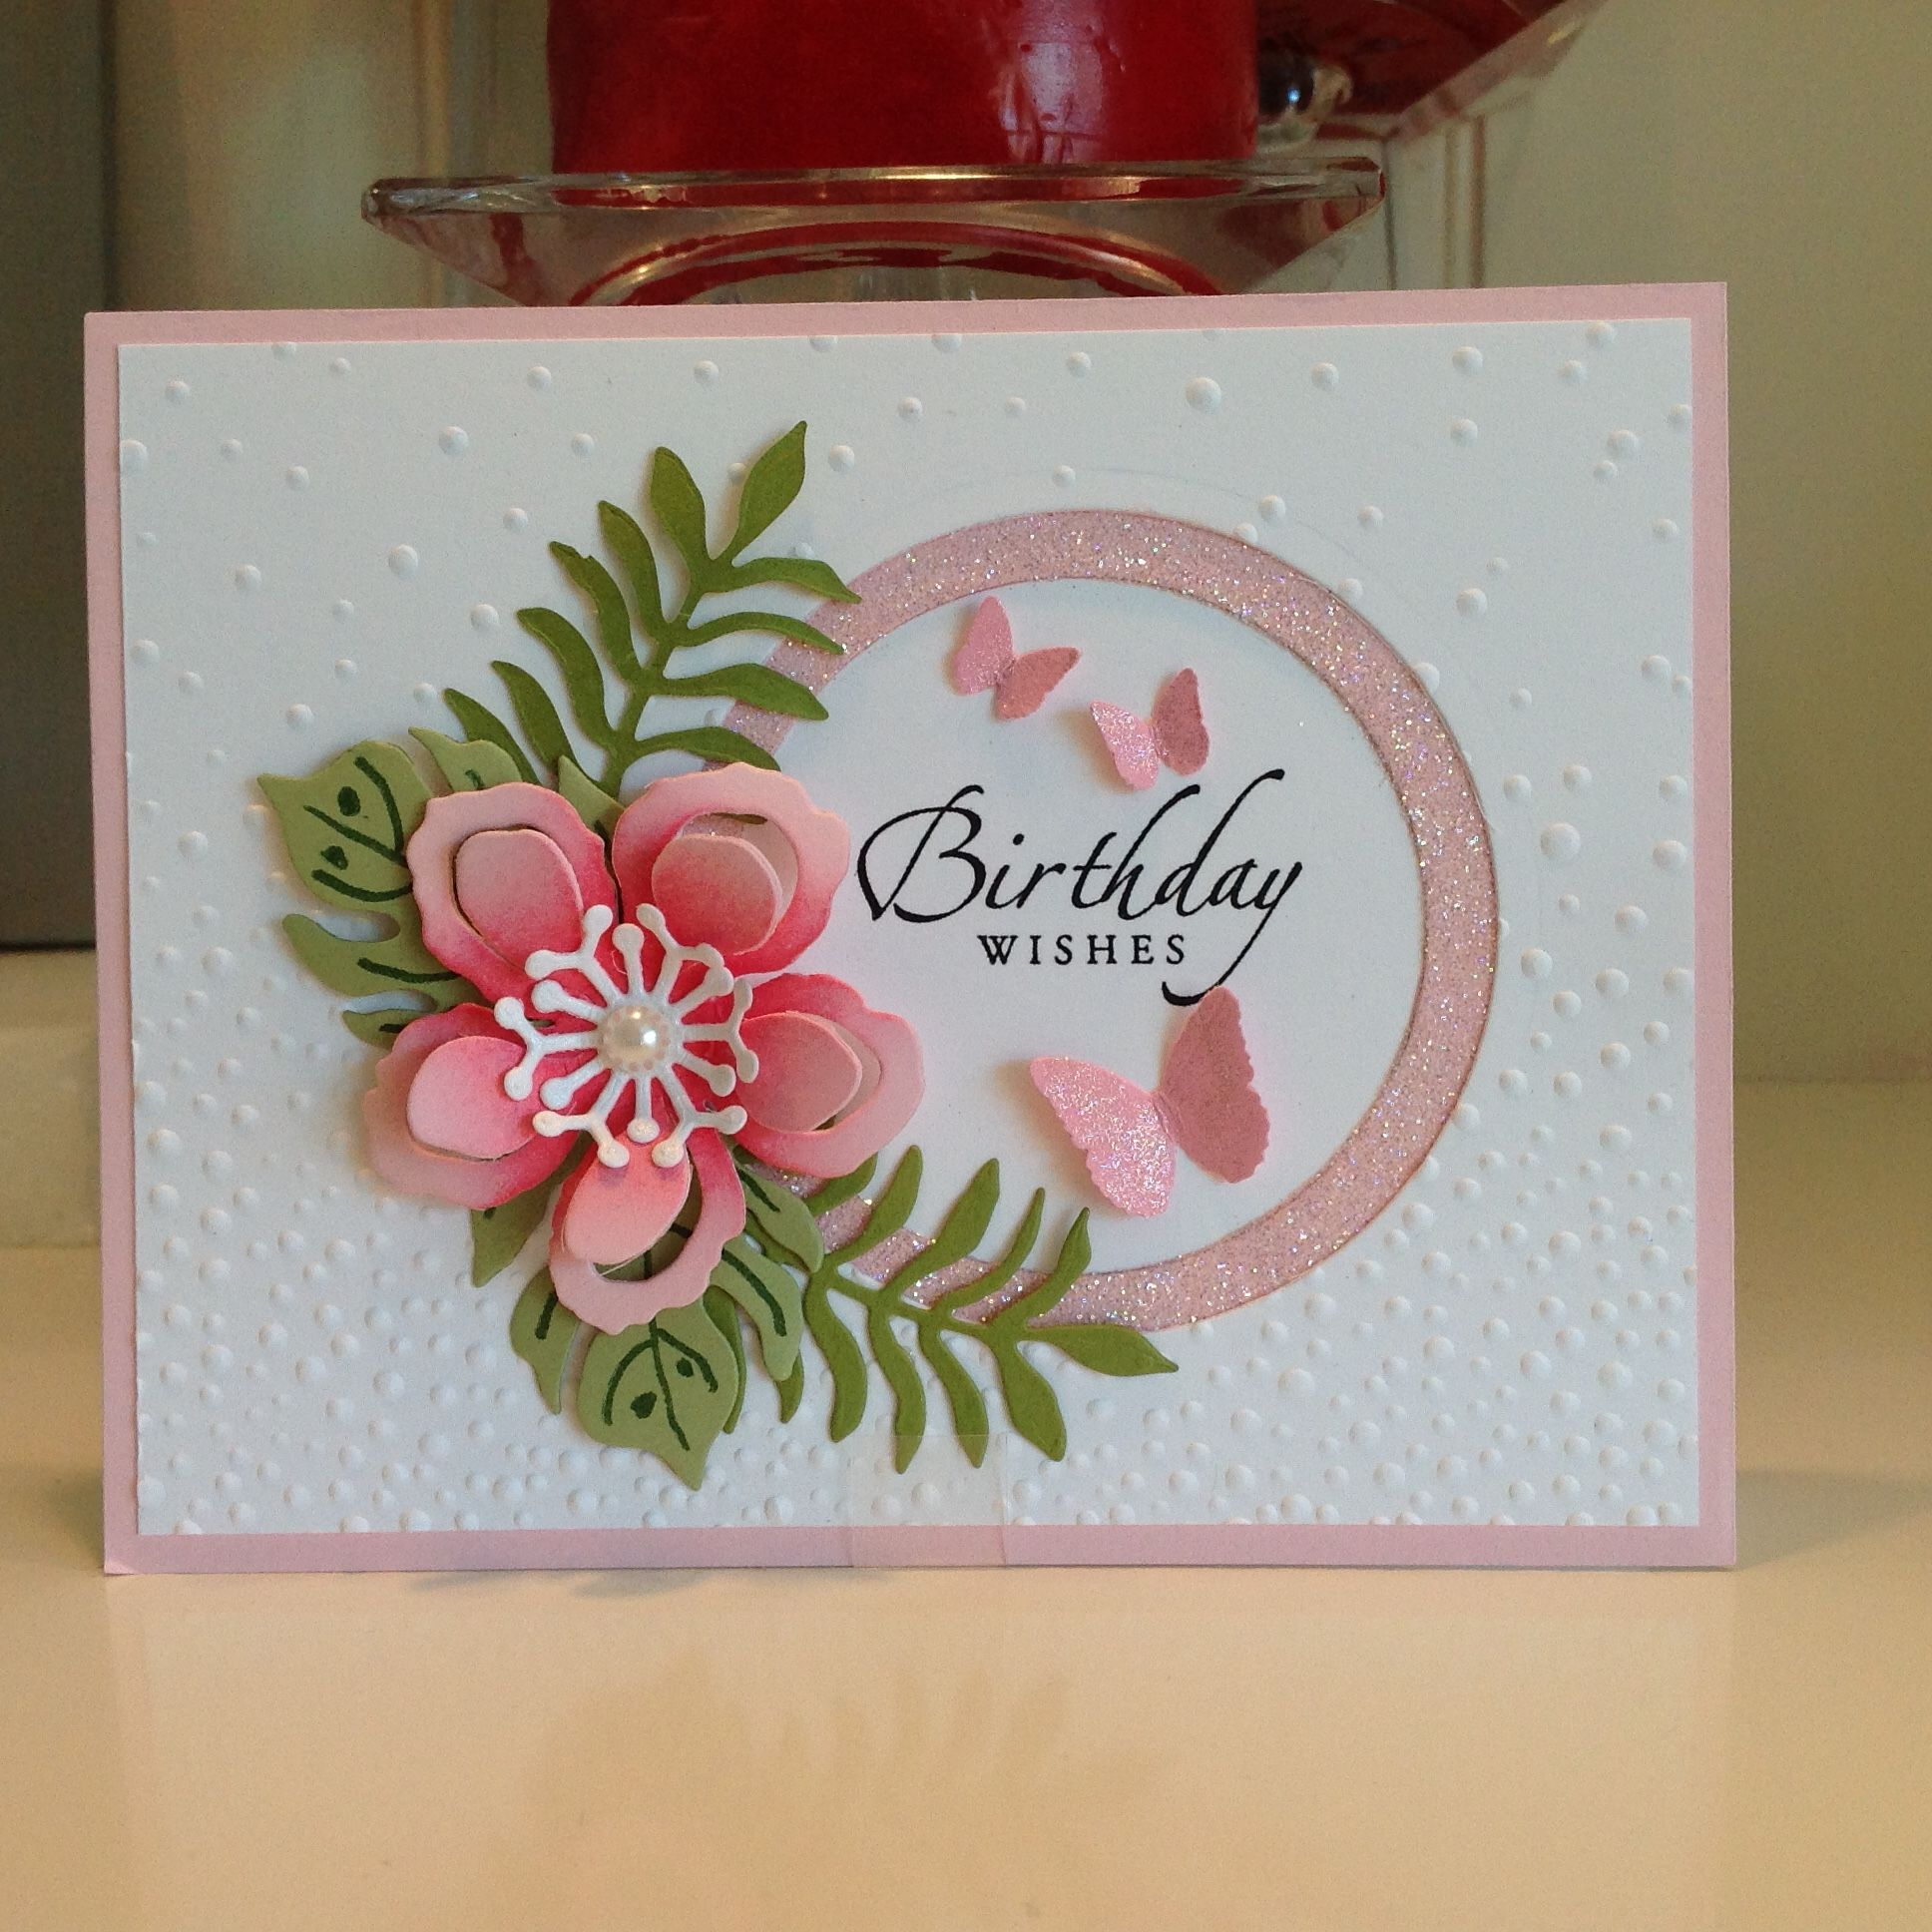 Happy Birthday card using Stampin Up Botanical Blooms